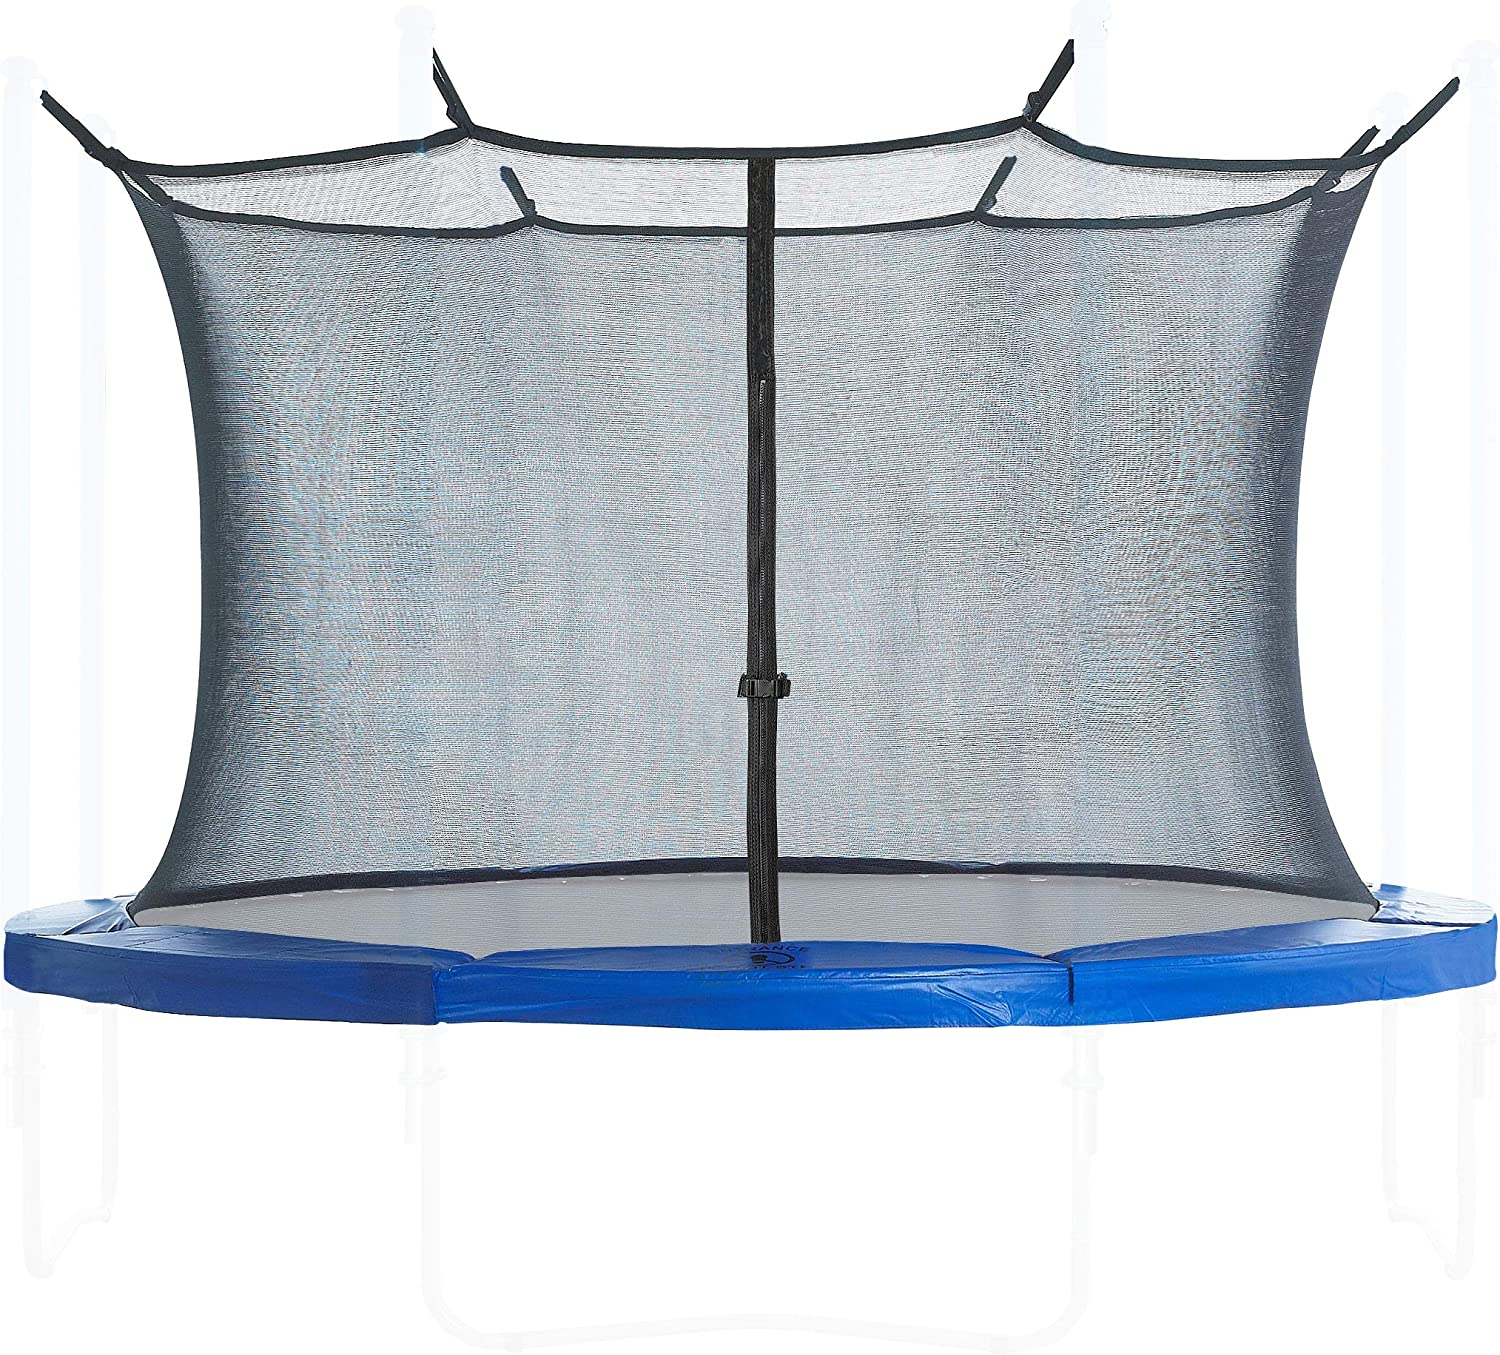 TRAMPOLINE REPLACEMENT PAD PADDING SAFETY NET ENCLOSURE 8ft New Unused Clearance